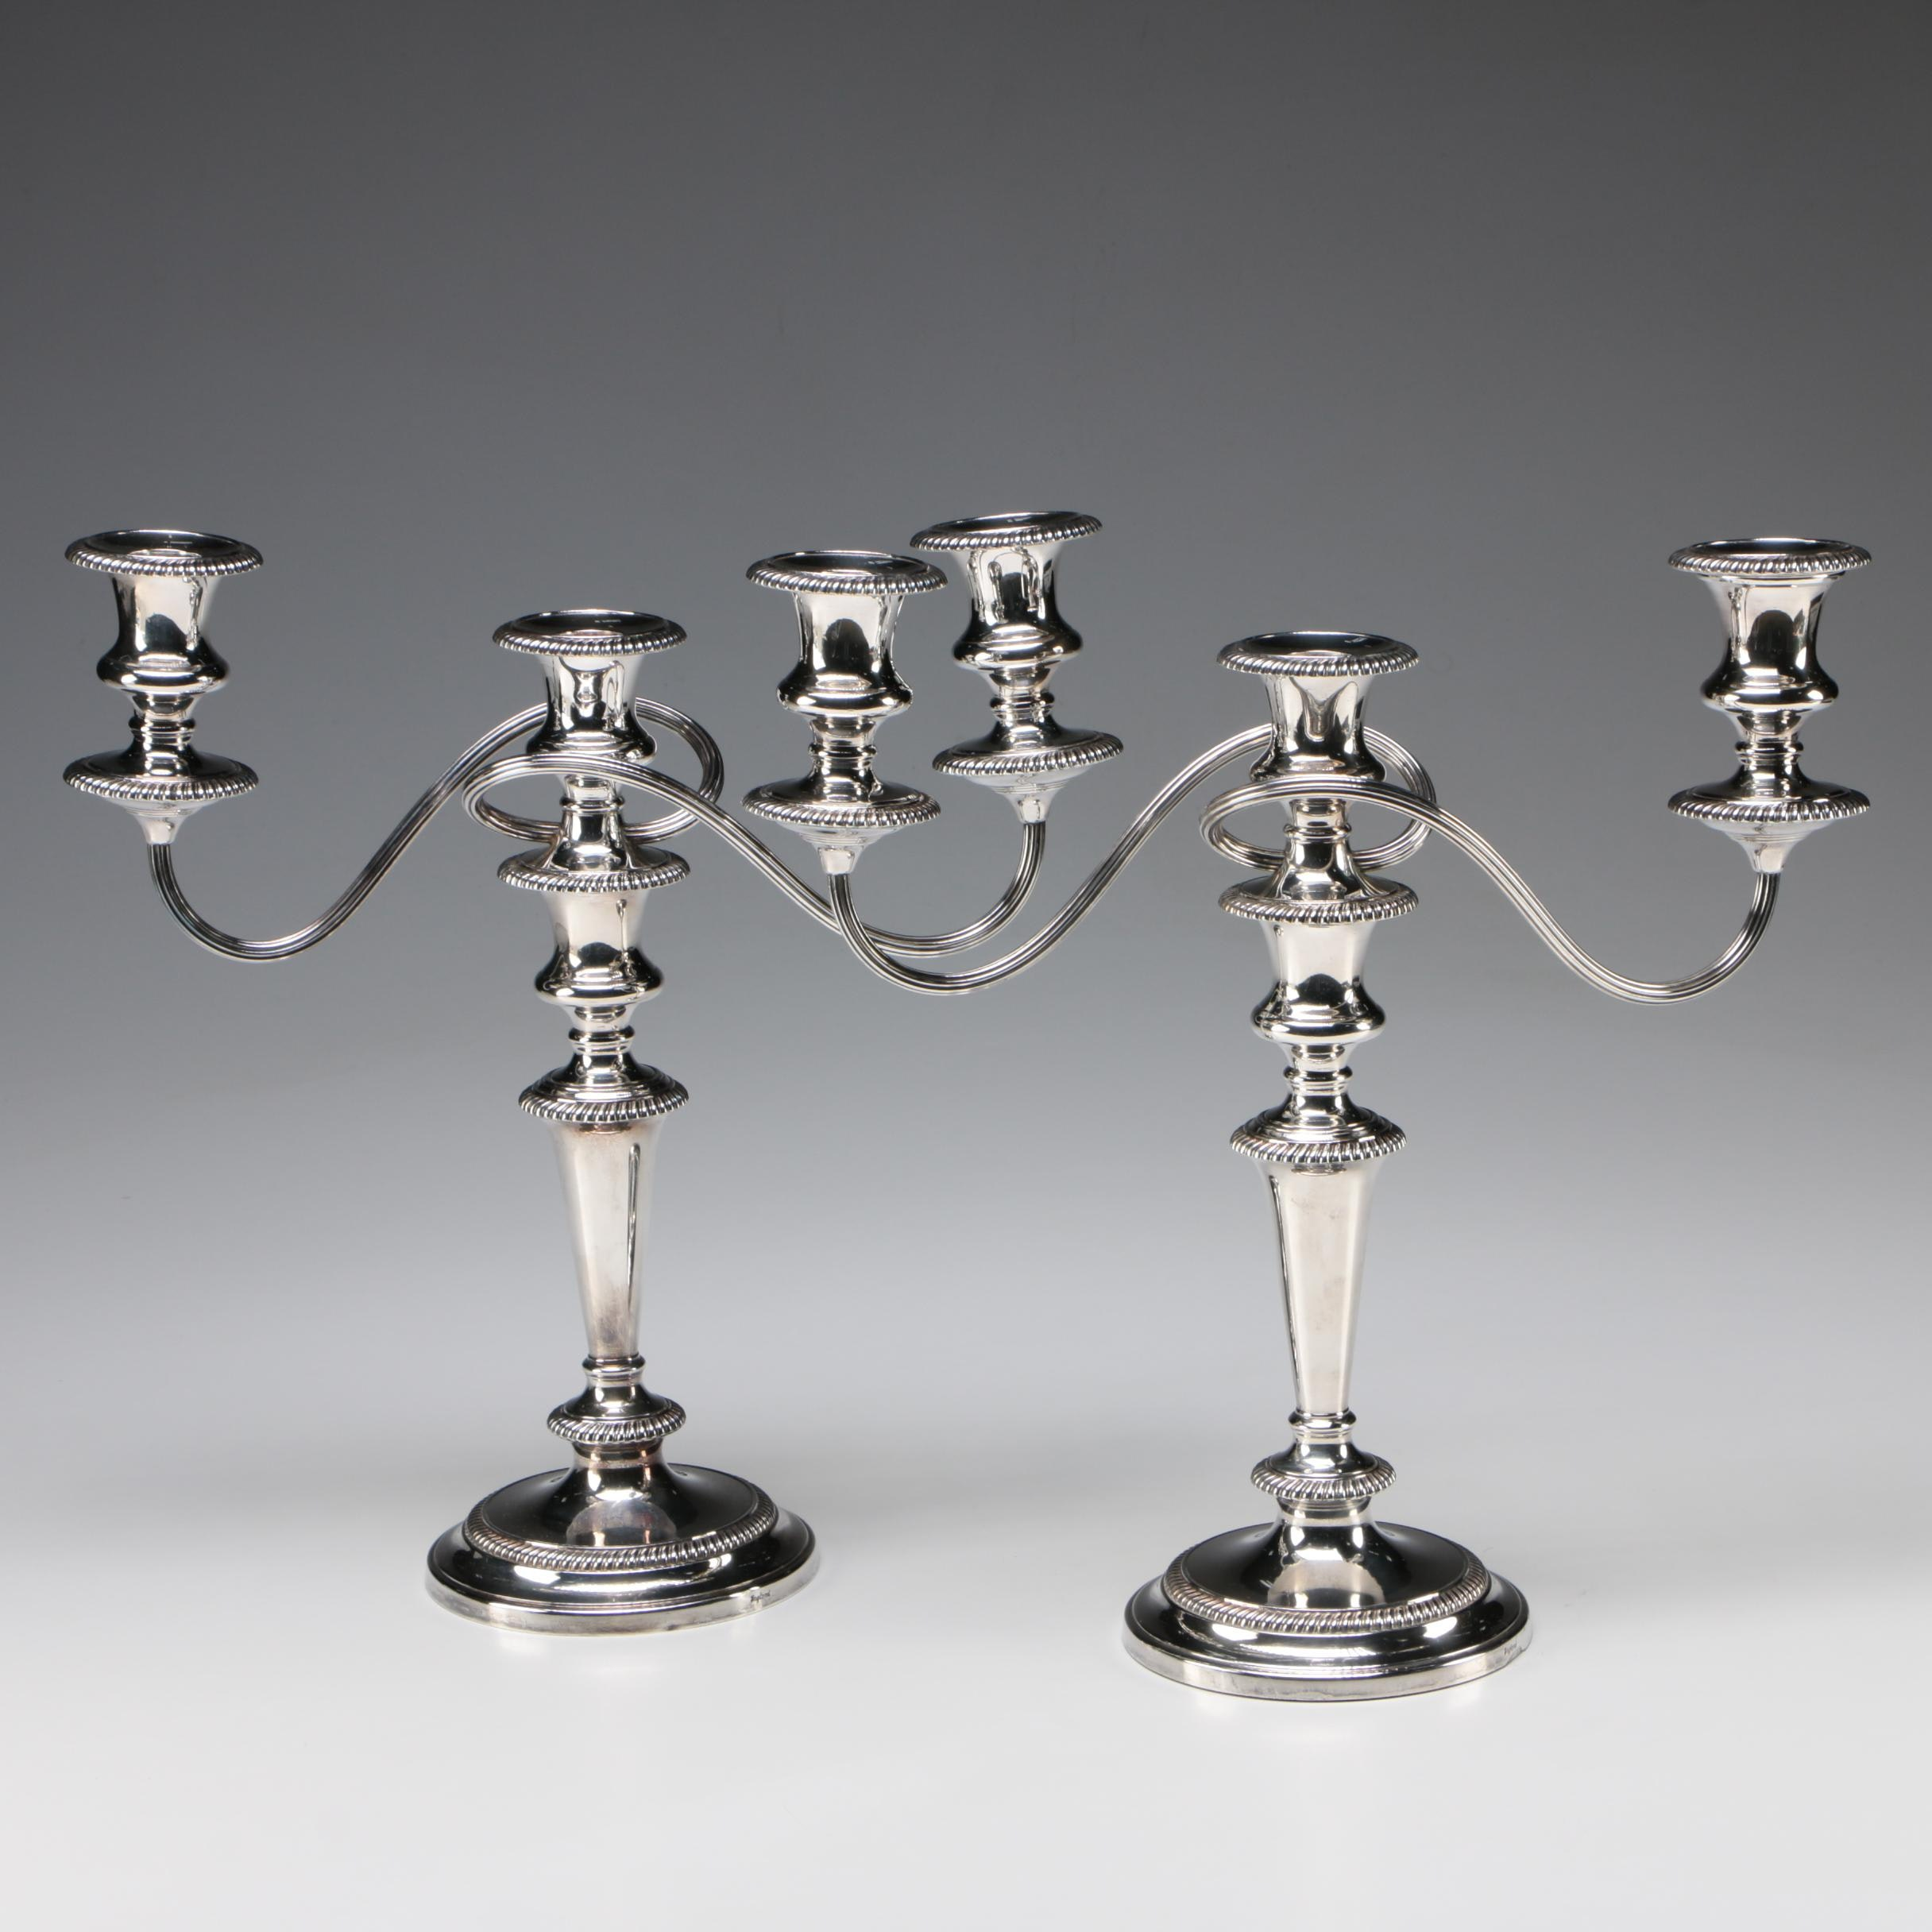 Barker Brothers English Silver Plate Gadrooned Candelabra